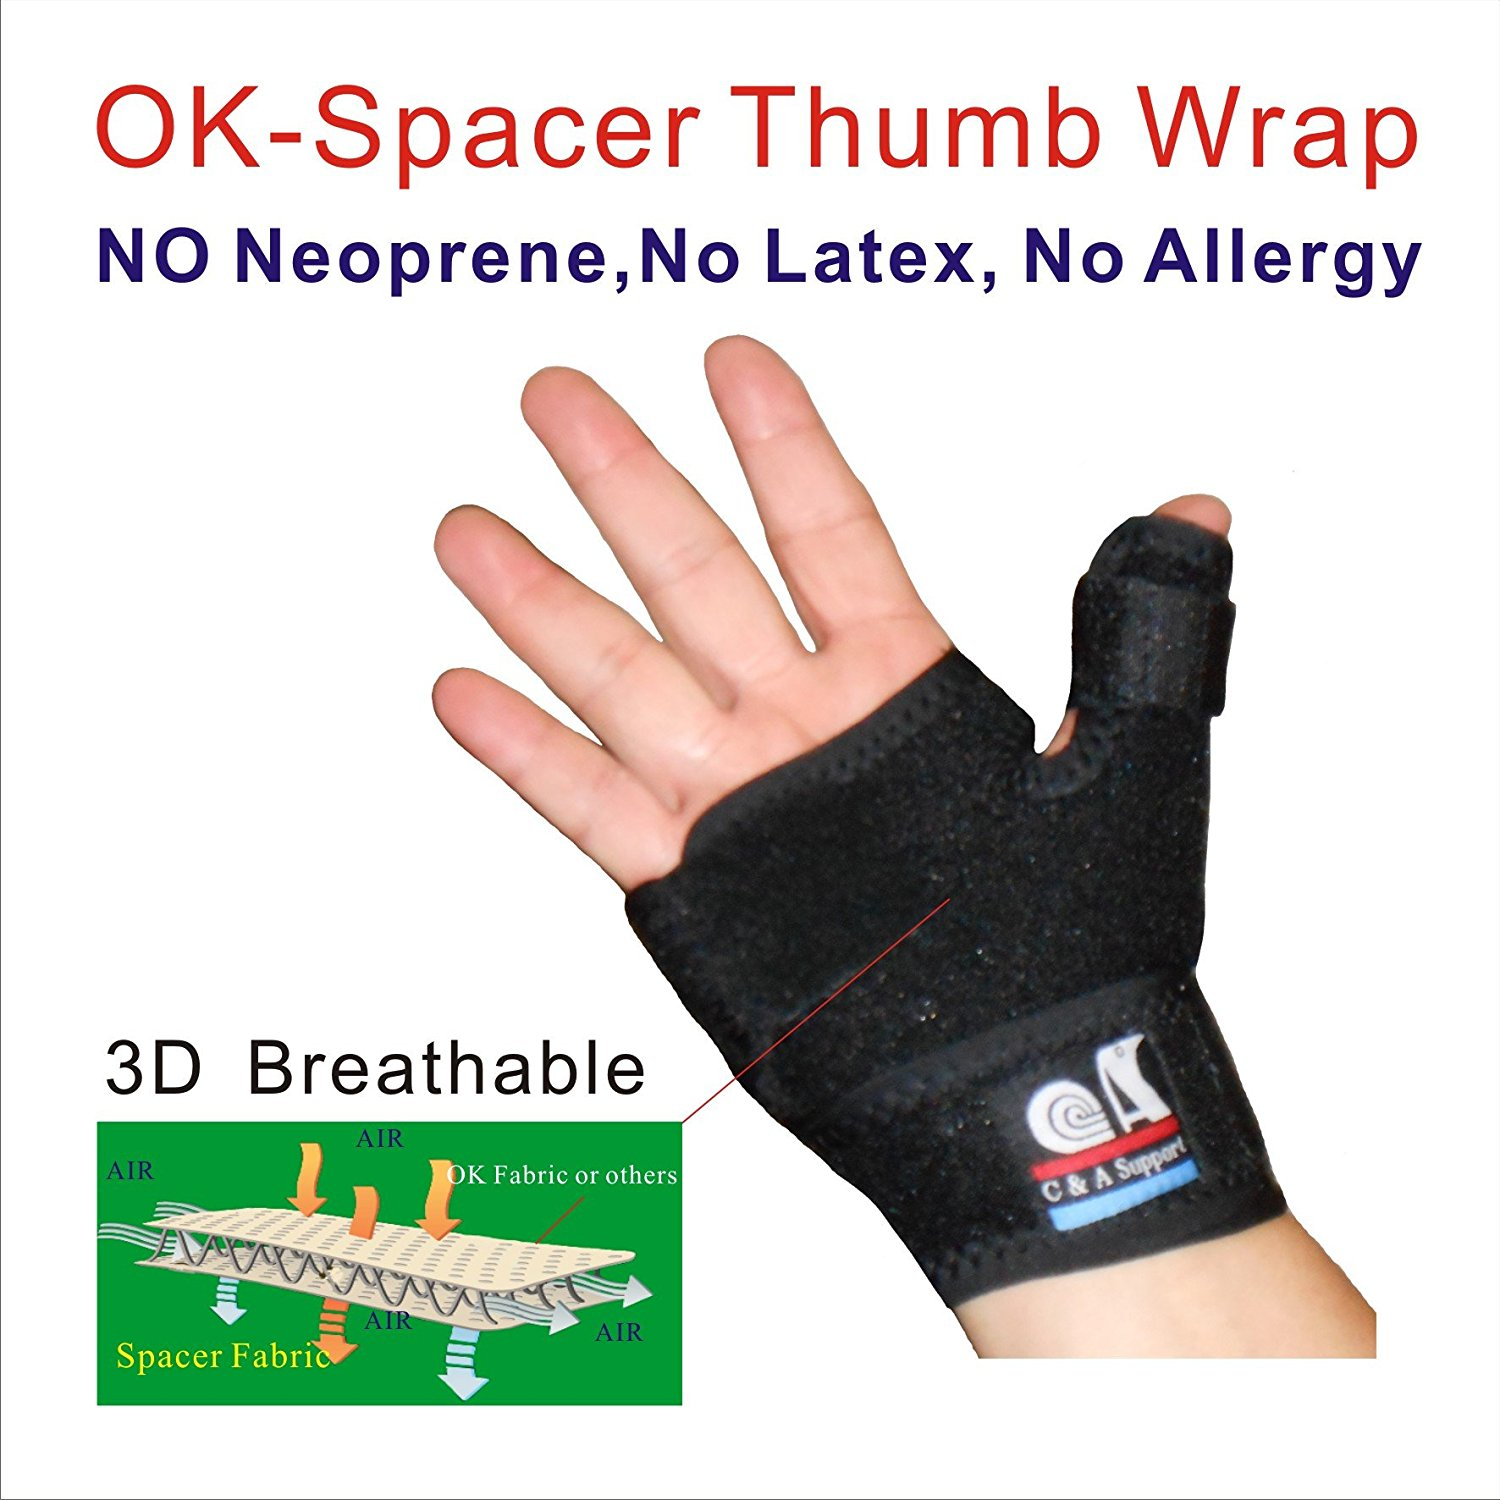 TB-OS-36,3D Breathable Patented Fabric Reversible Thumb & Palm Stabilizer, Brace Splint, for Arthritis, Pain,Sprains,Strains, Trigger Thumb Immobilizer, BlackBerry Thumb, Mommy Thumb